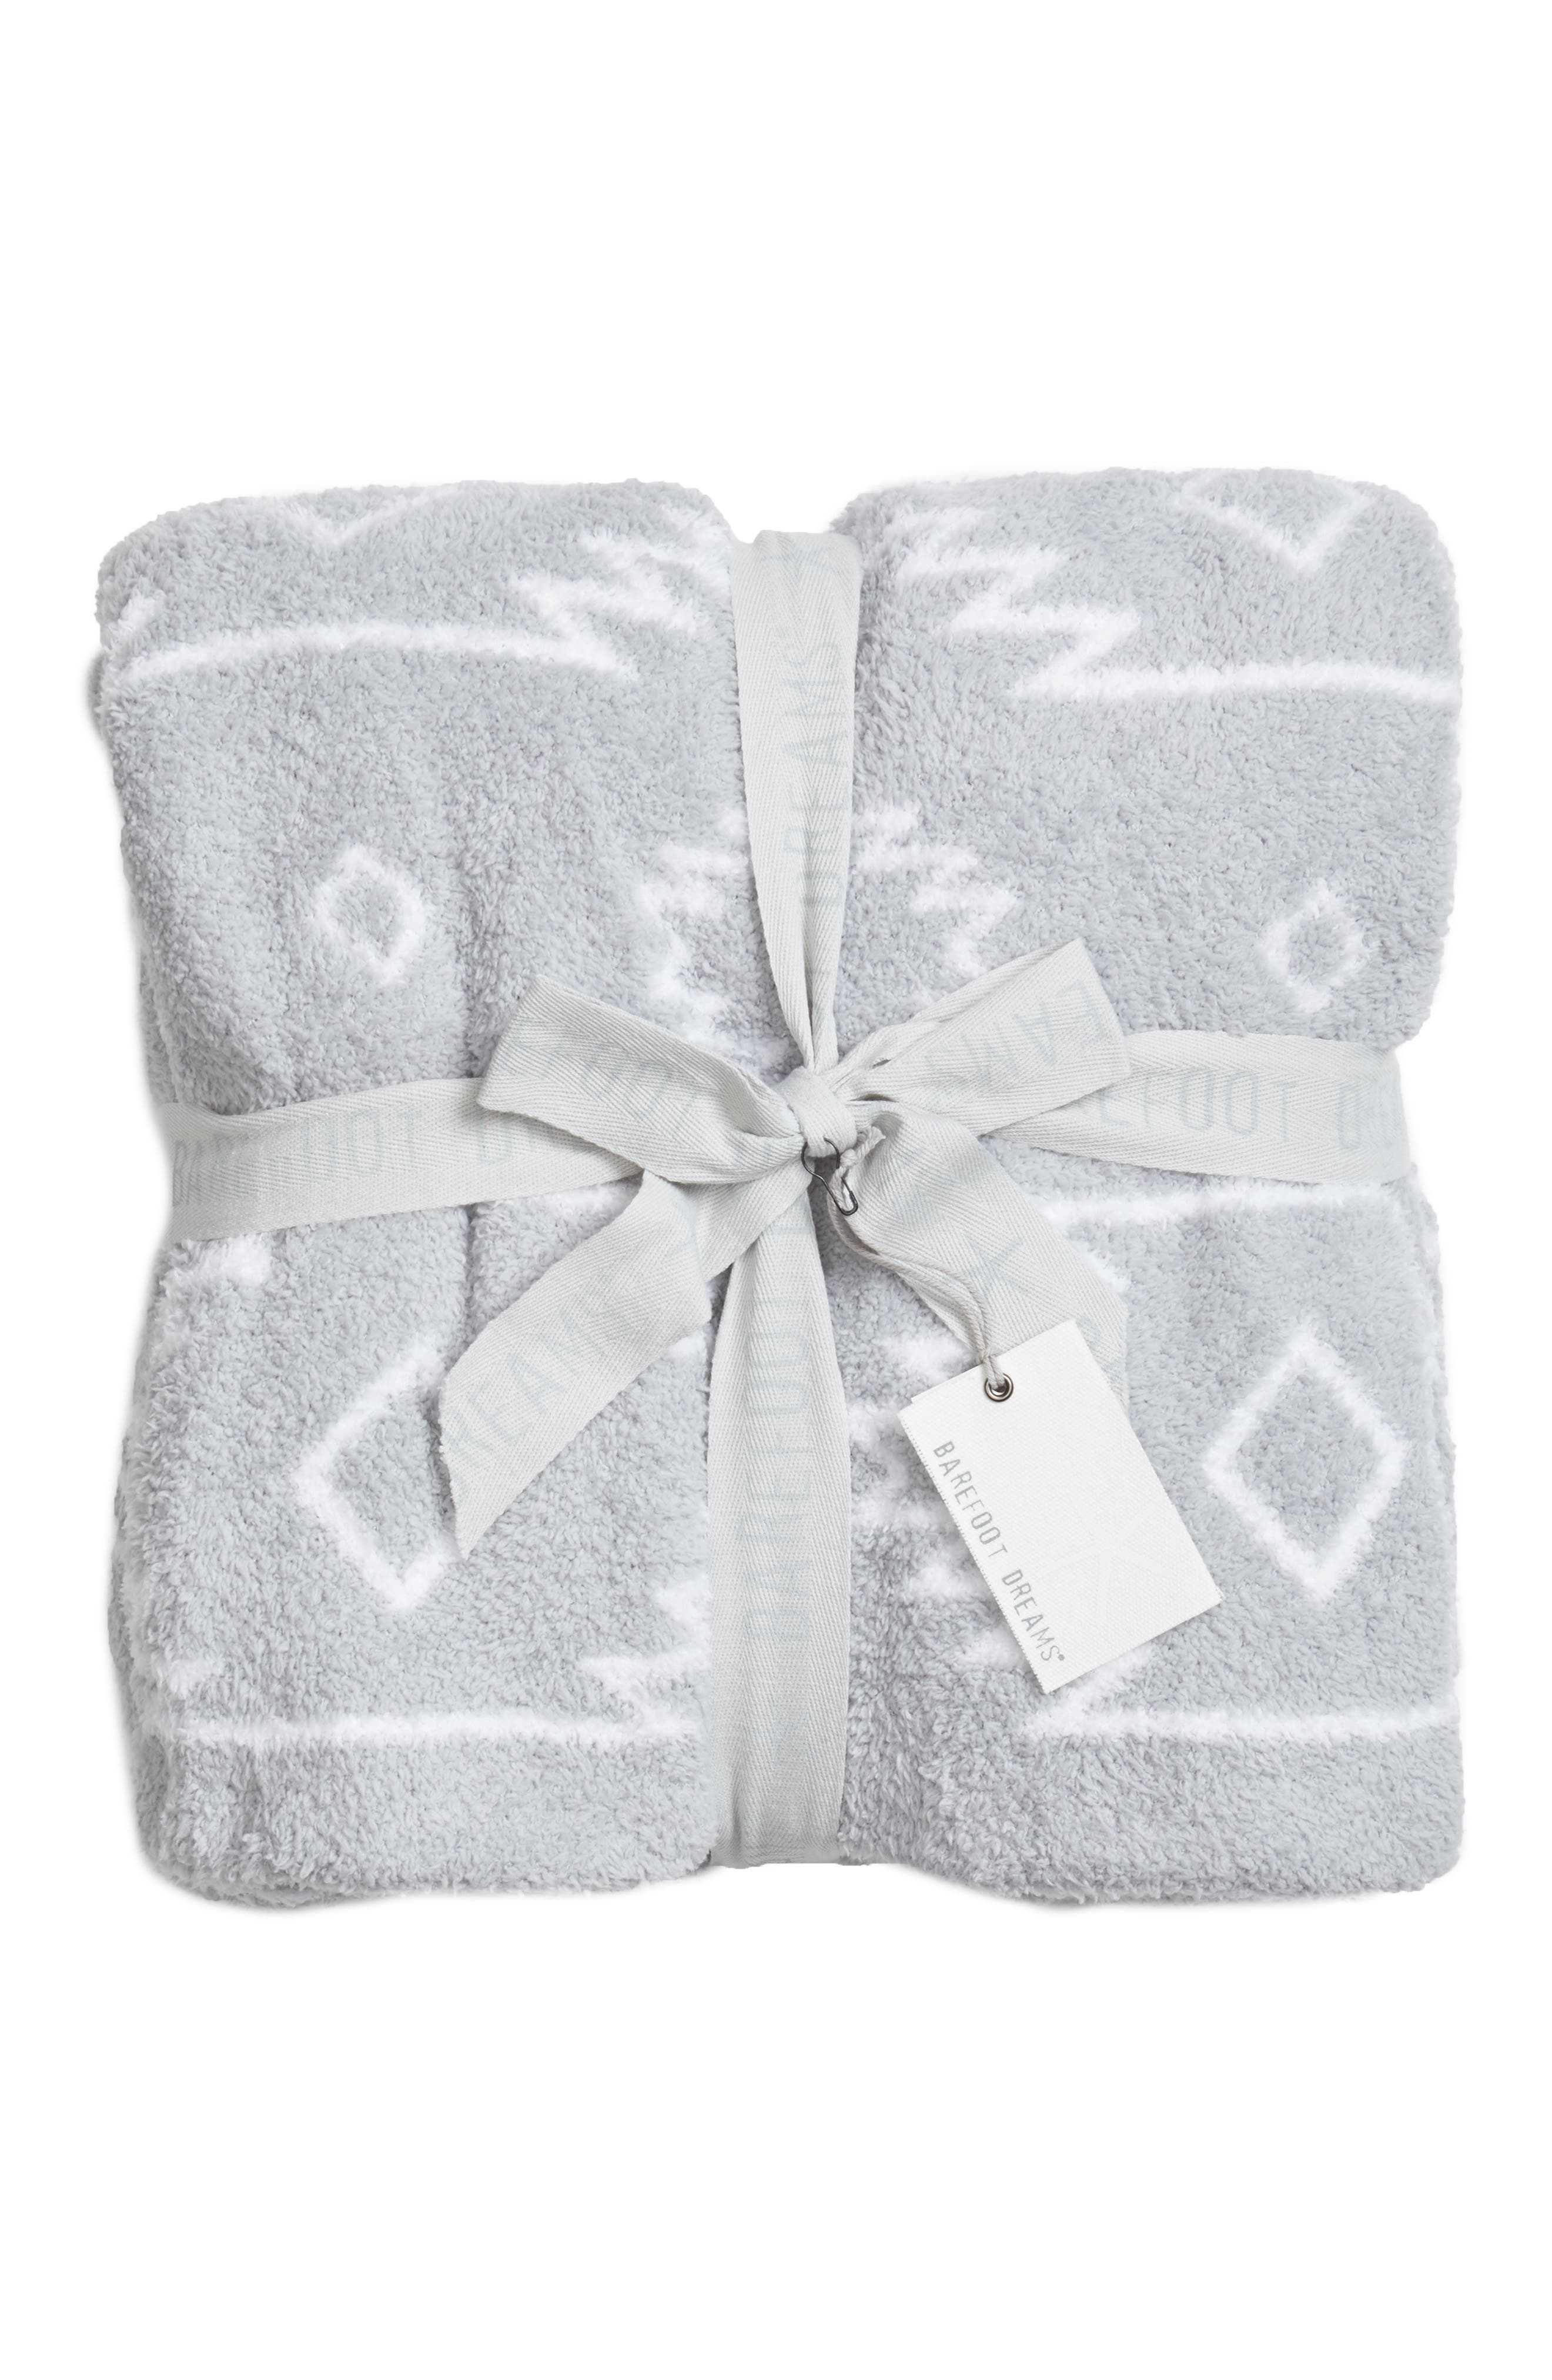 Alternate Image 1 Selected - Barefoot Dreams CozyChic® Urban Throw